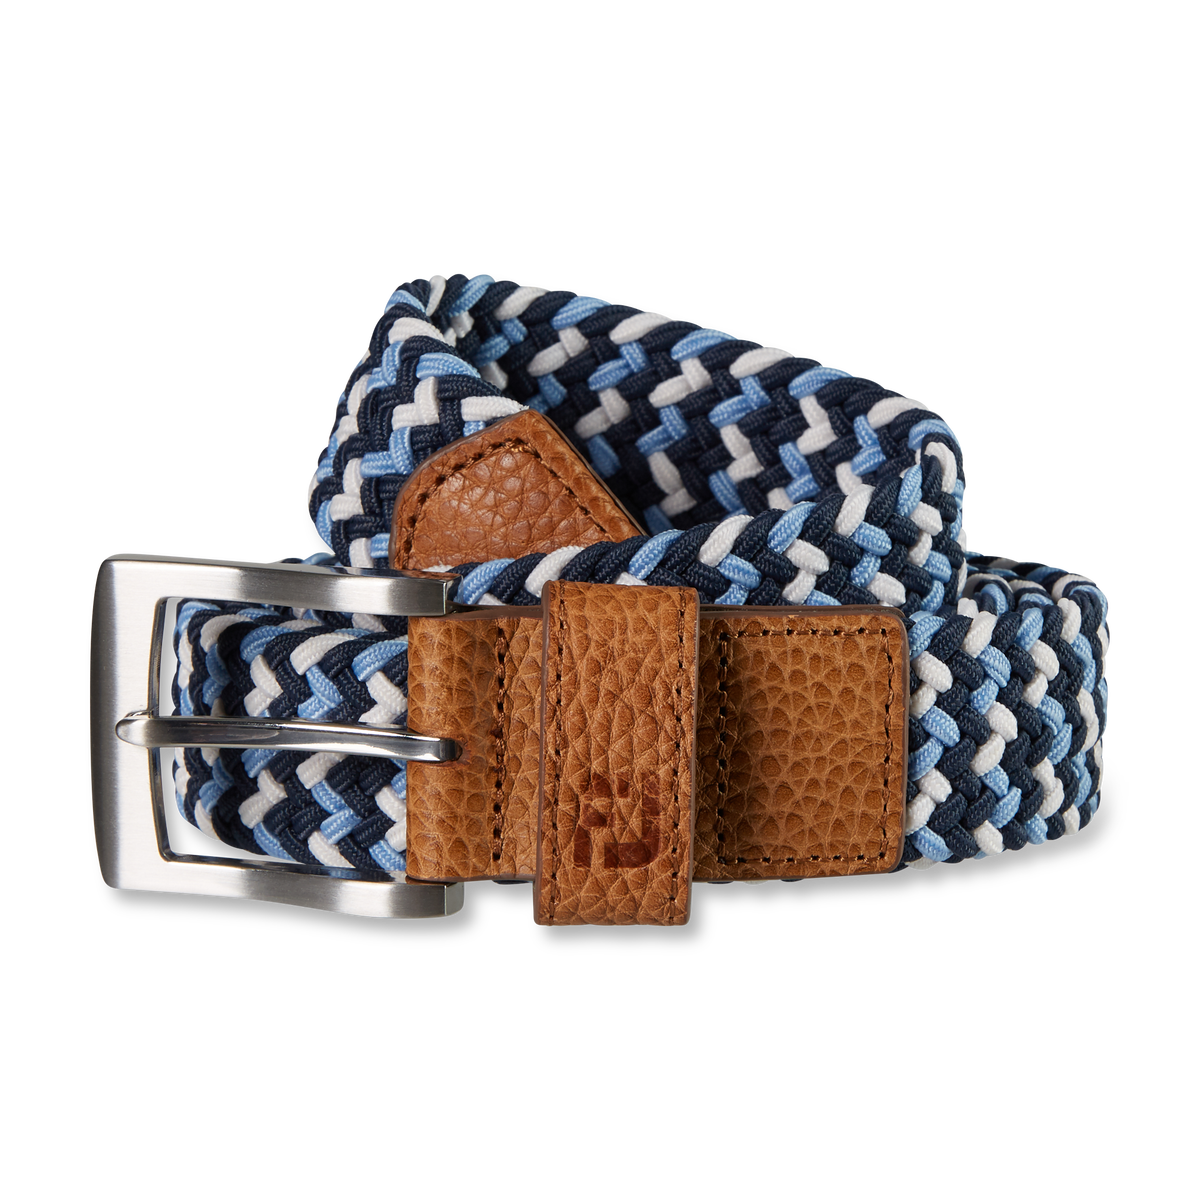 Limited Edition Woven Belt